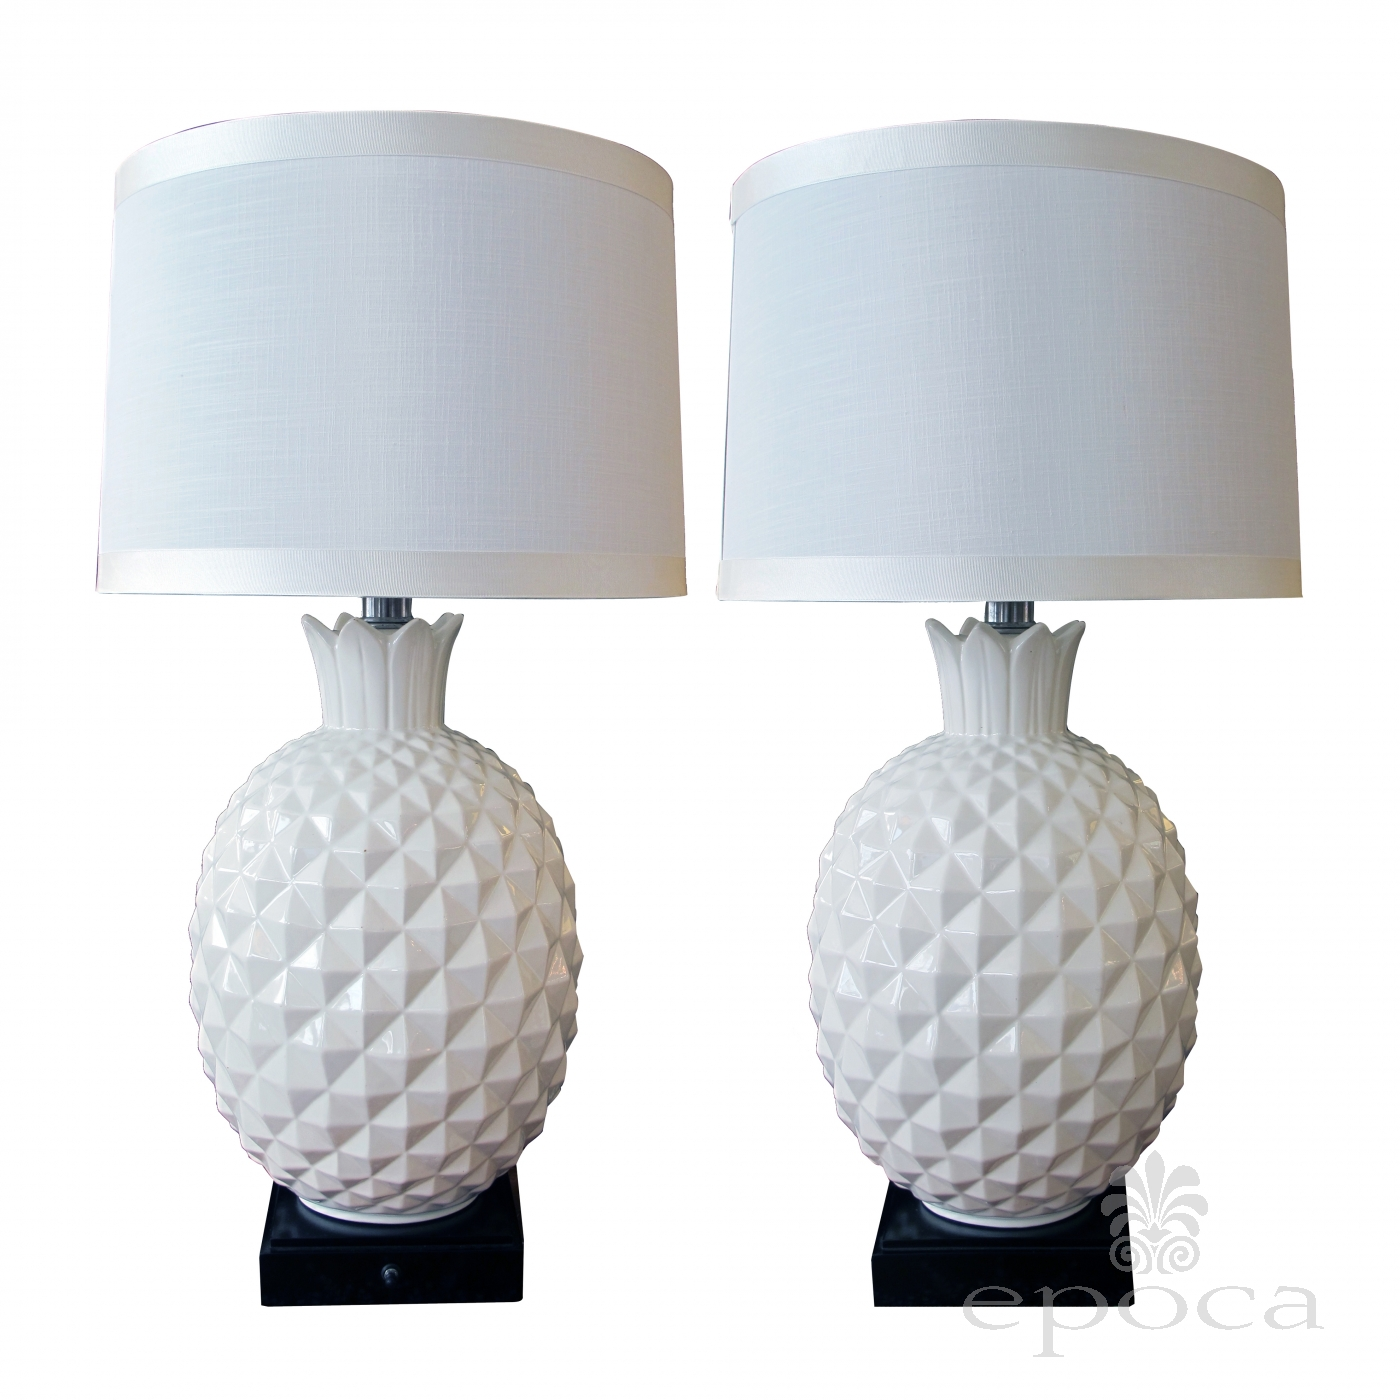 A Robust And Large scaled Pair Of Italian 1960s White